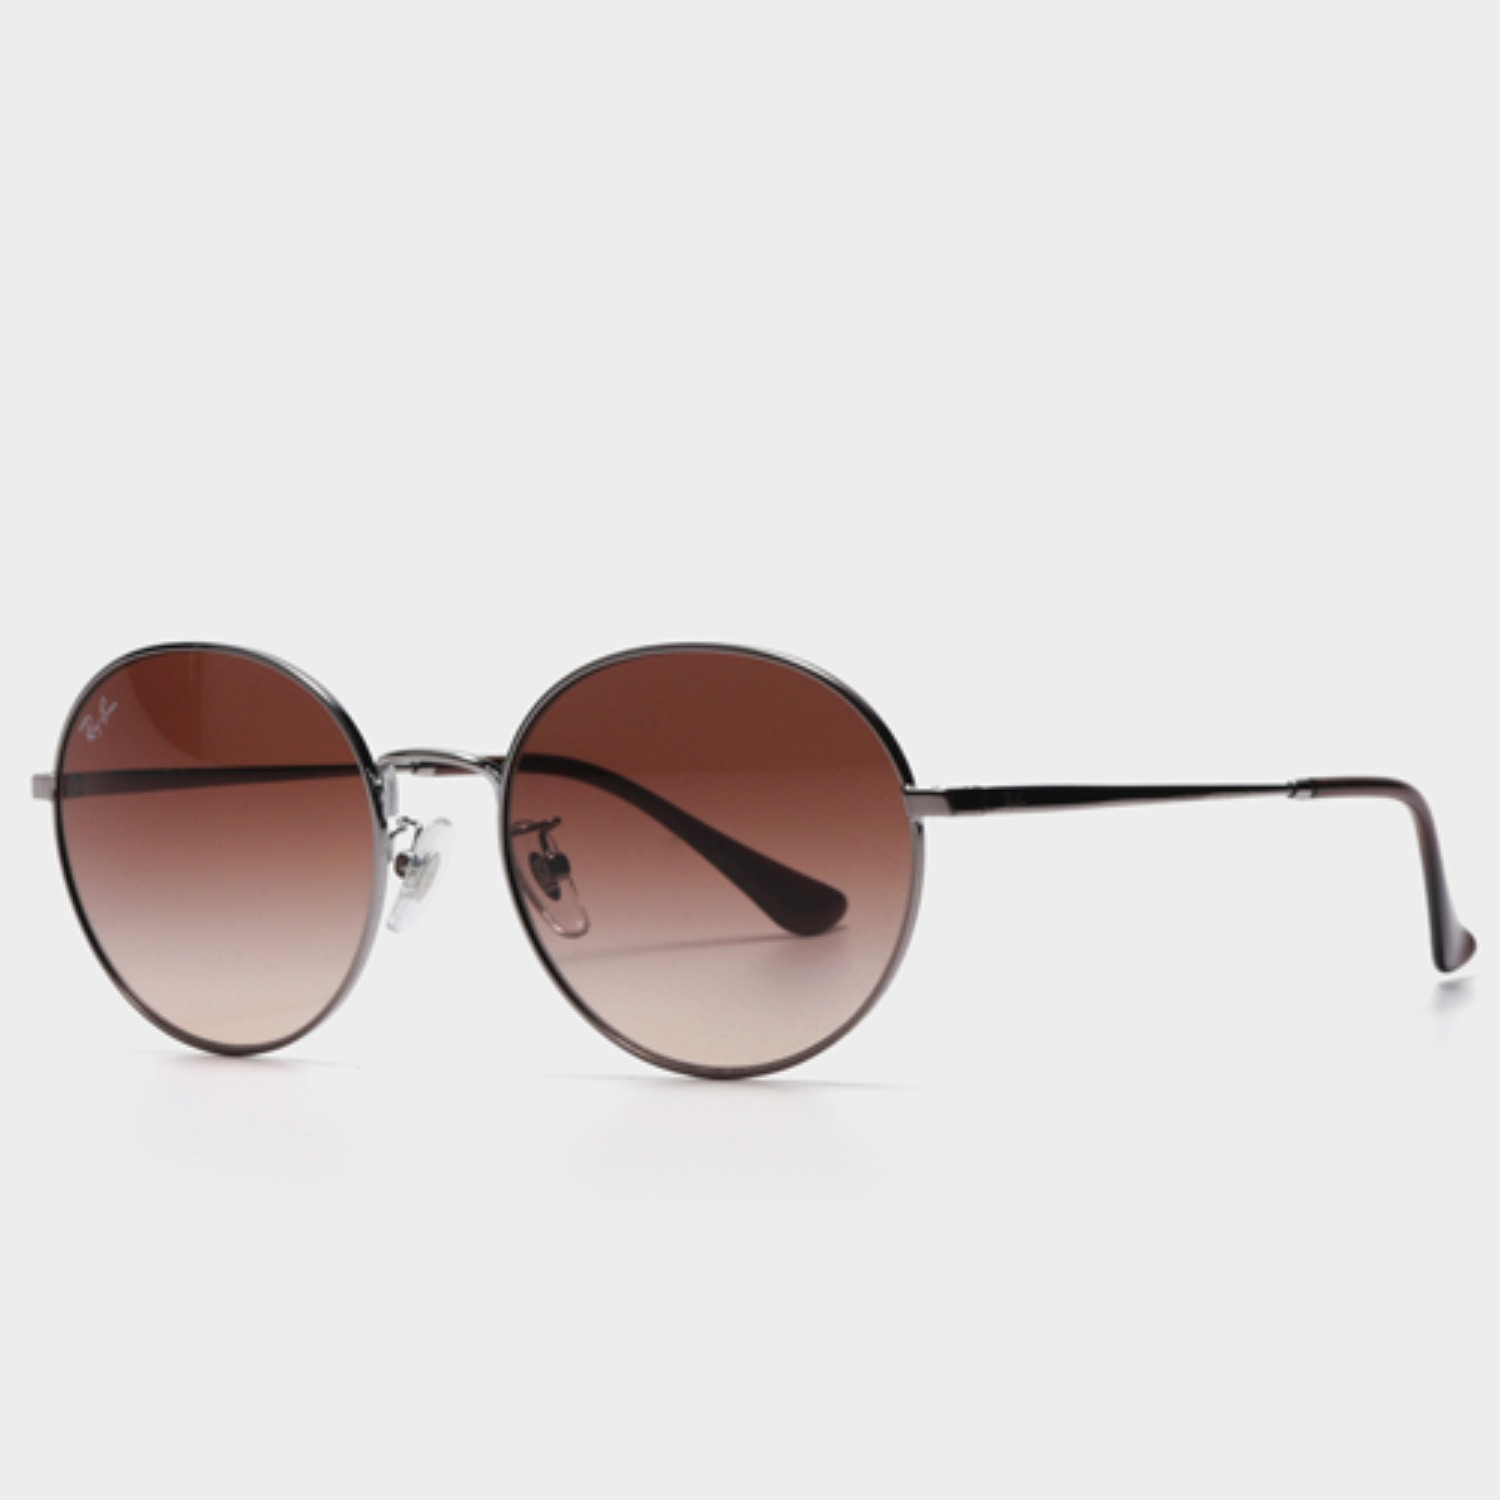 레이벤 RB3612D 004 13 (56) (Brown Gradation Lens)